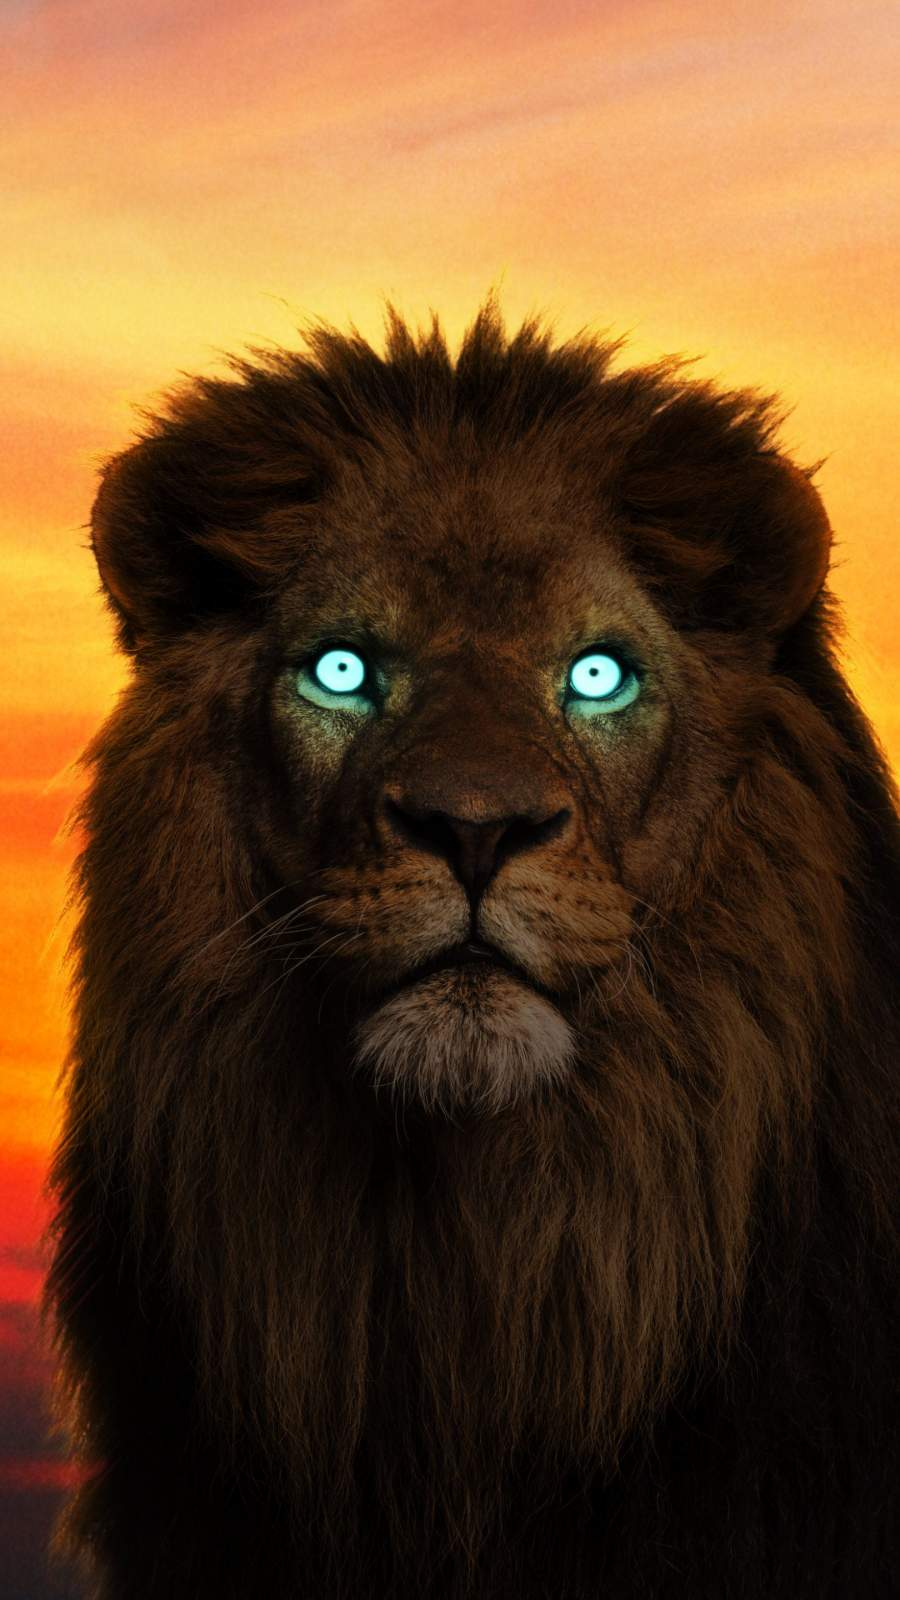 The King Lion Glowing Eyes